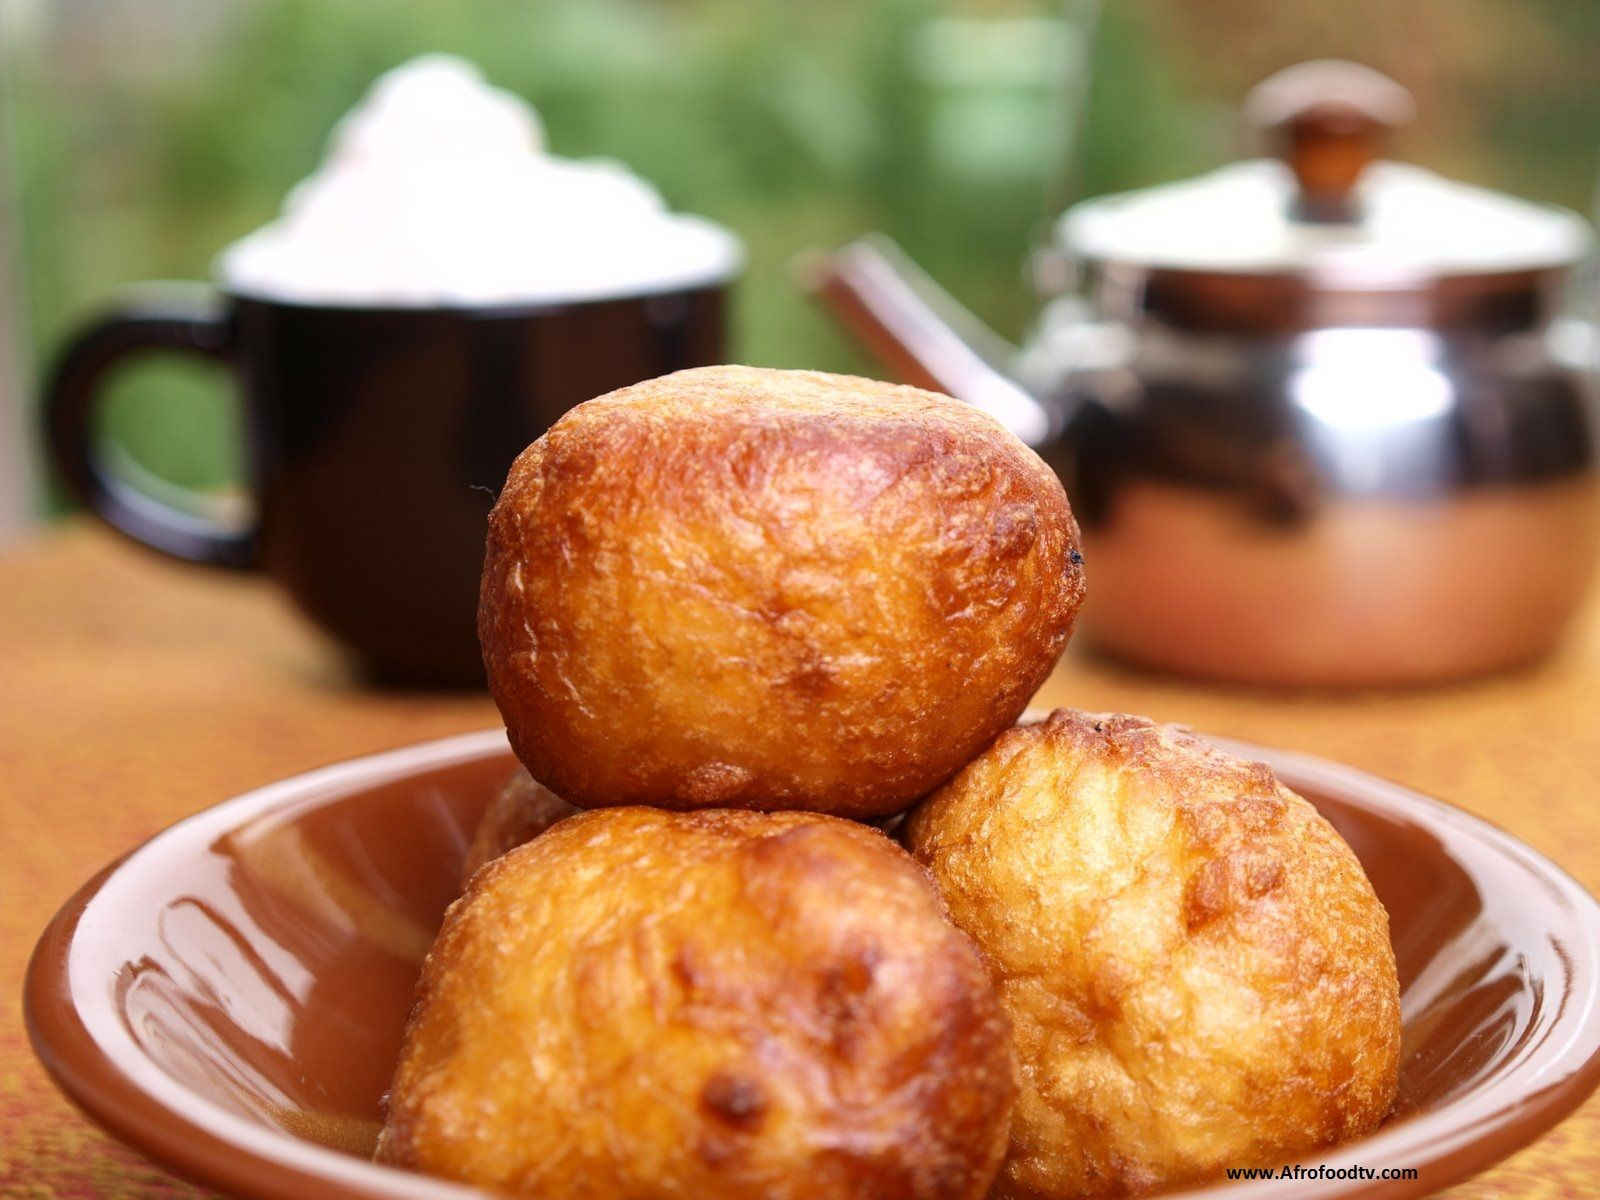 Puff puff is a traditional nigerian food similar to a for Authentic african cuisine